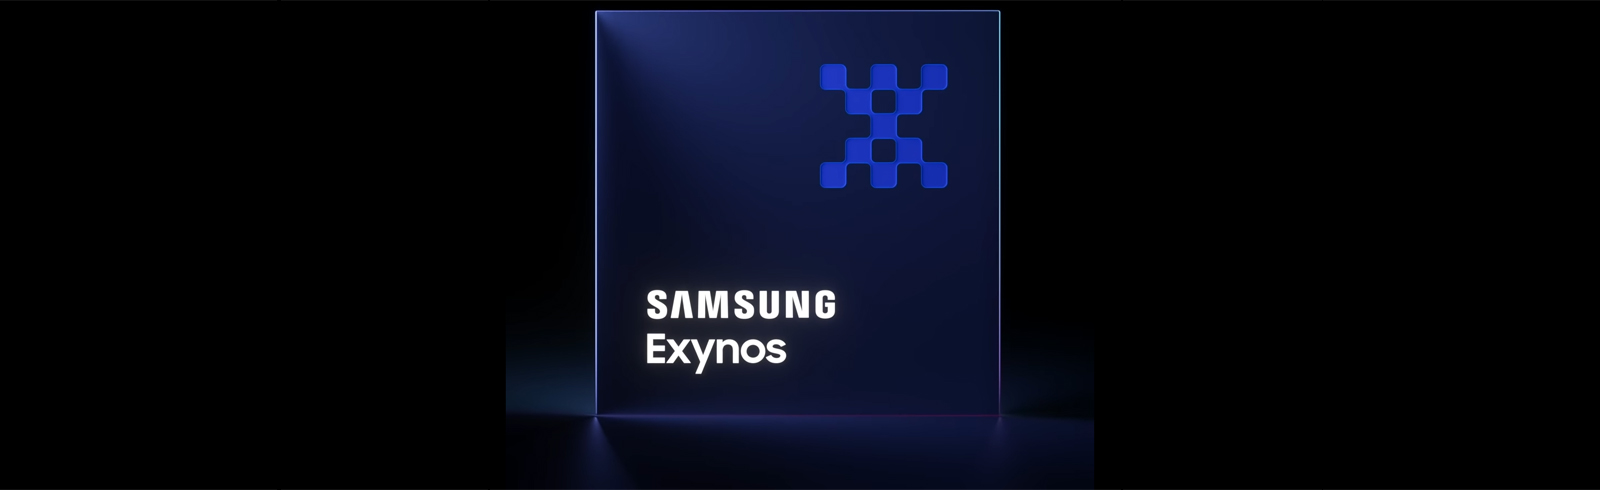 Samsung will unveil its next flagship Exynos chipset on January 12